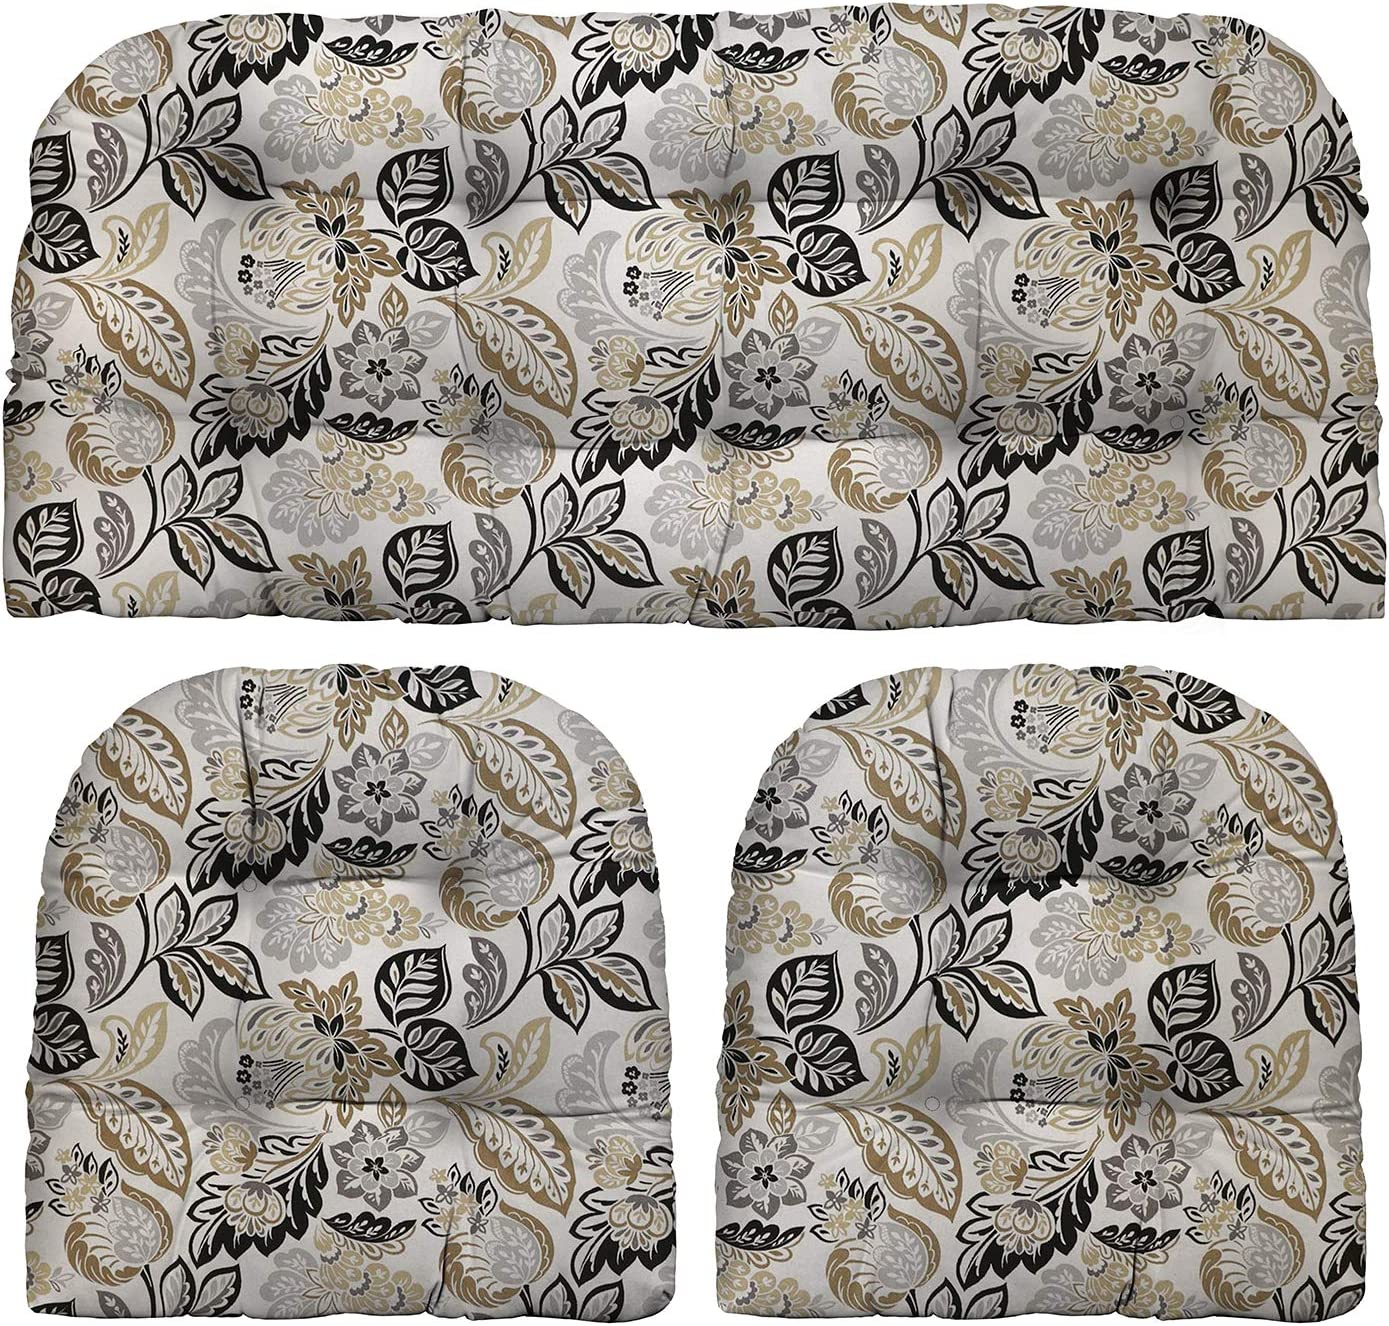 """RSH Décor Indoor Outdoor Grey Brown Tan Prints - 3 Pc Tufted Wicker Cushion Set 1 Loveseat & 2 U-Shape-Choose Color & Size (Dailey Pewter Grey Black Tan Floral Scroll, LS 41""""x19"""" US 19""""x19"""")"""